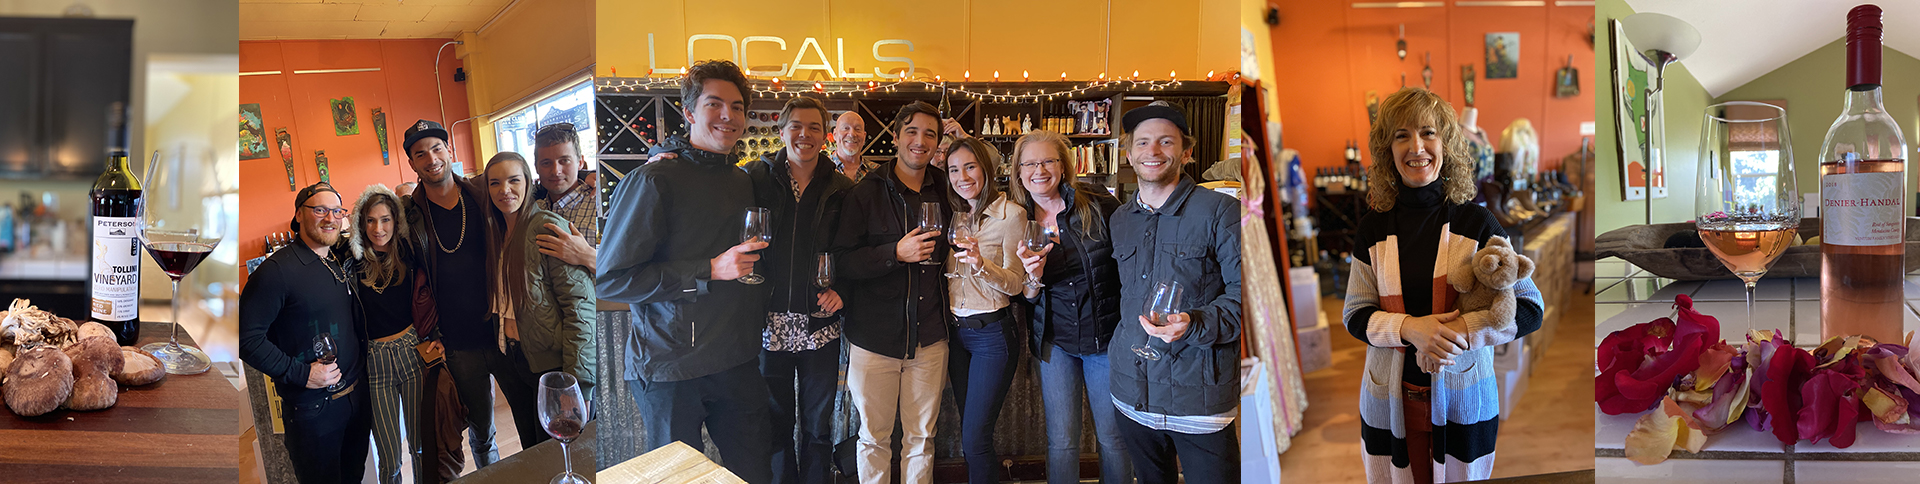 Locals Wine Club